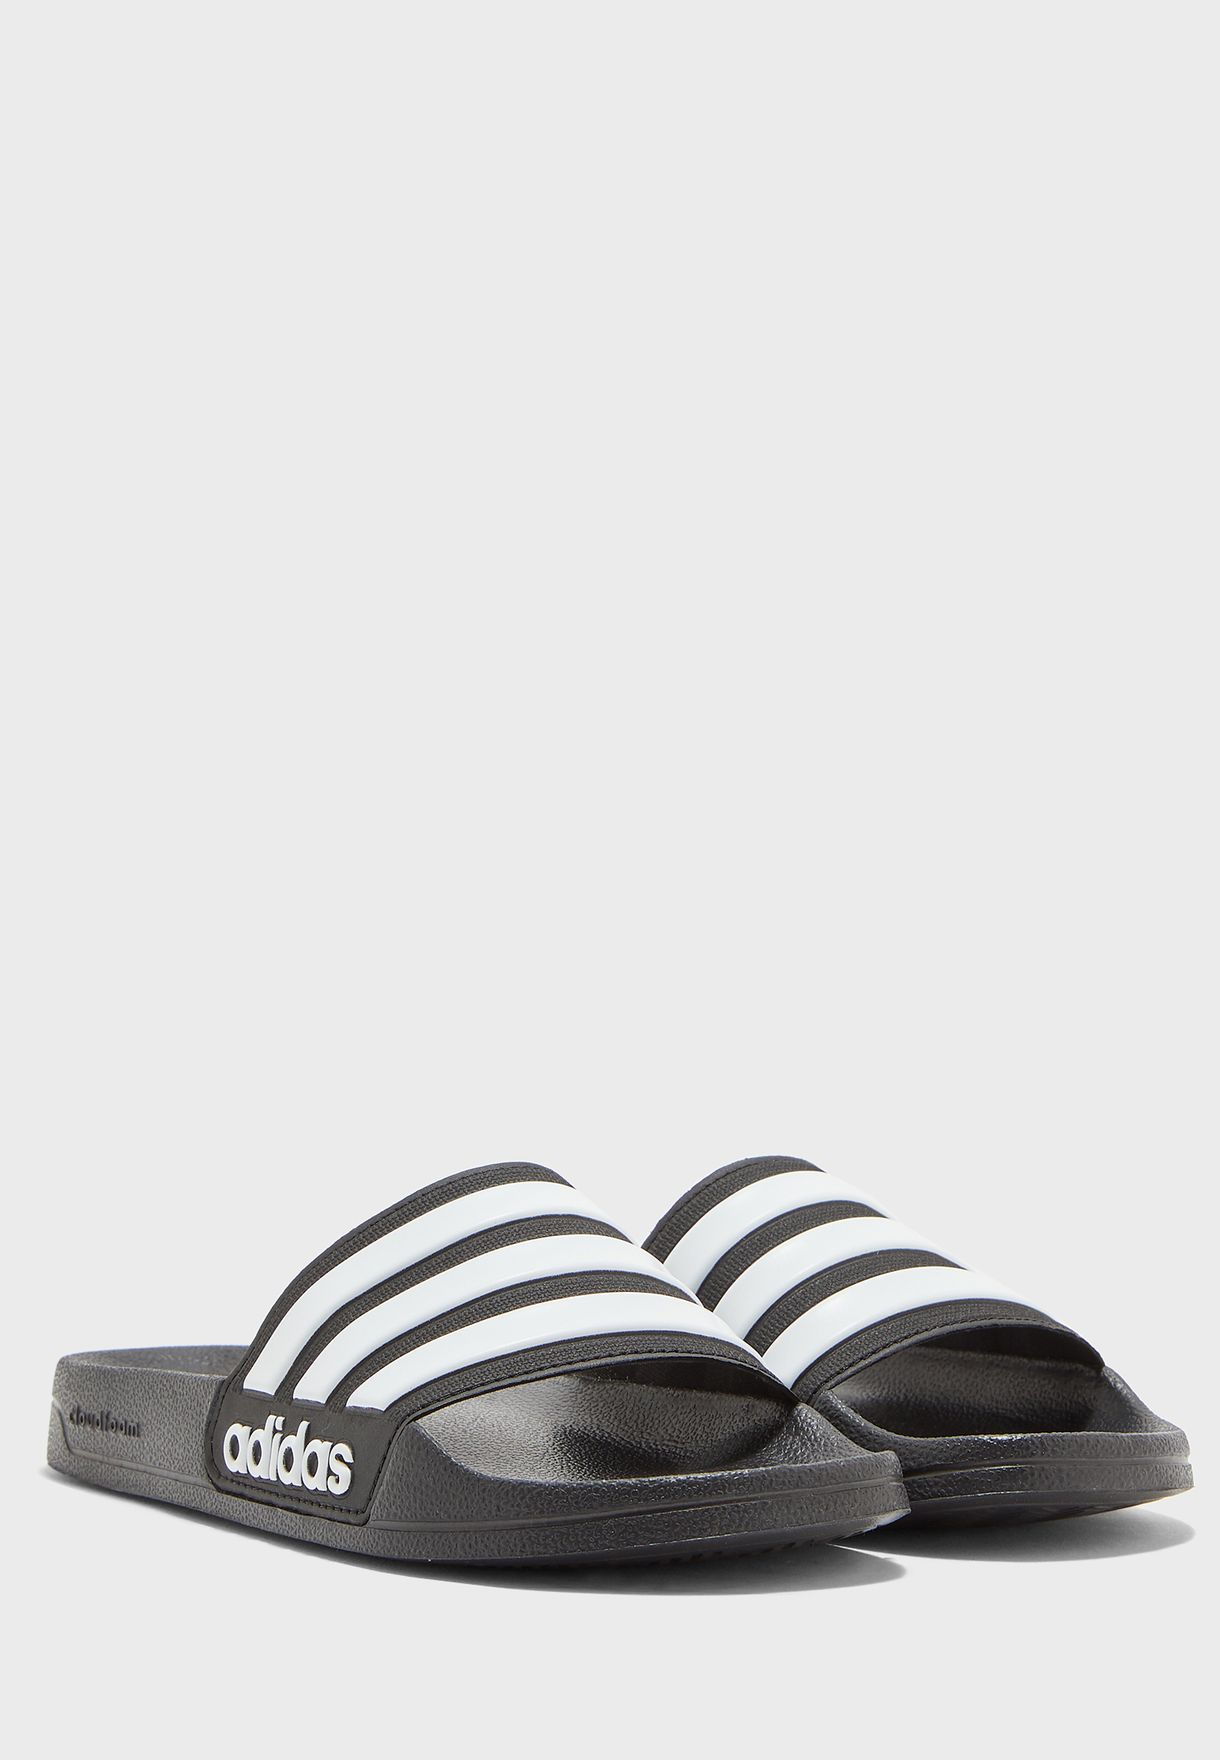 Adilette Shower Sports Swim Men's Slides